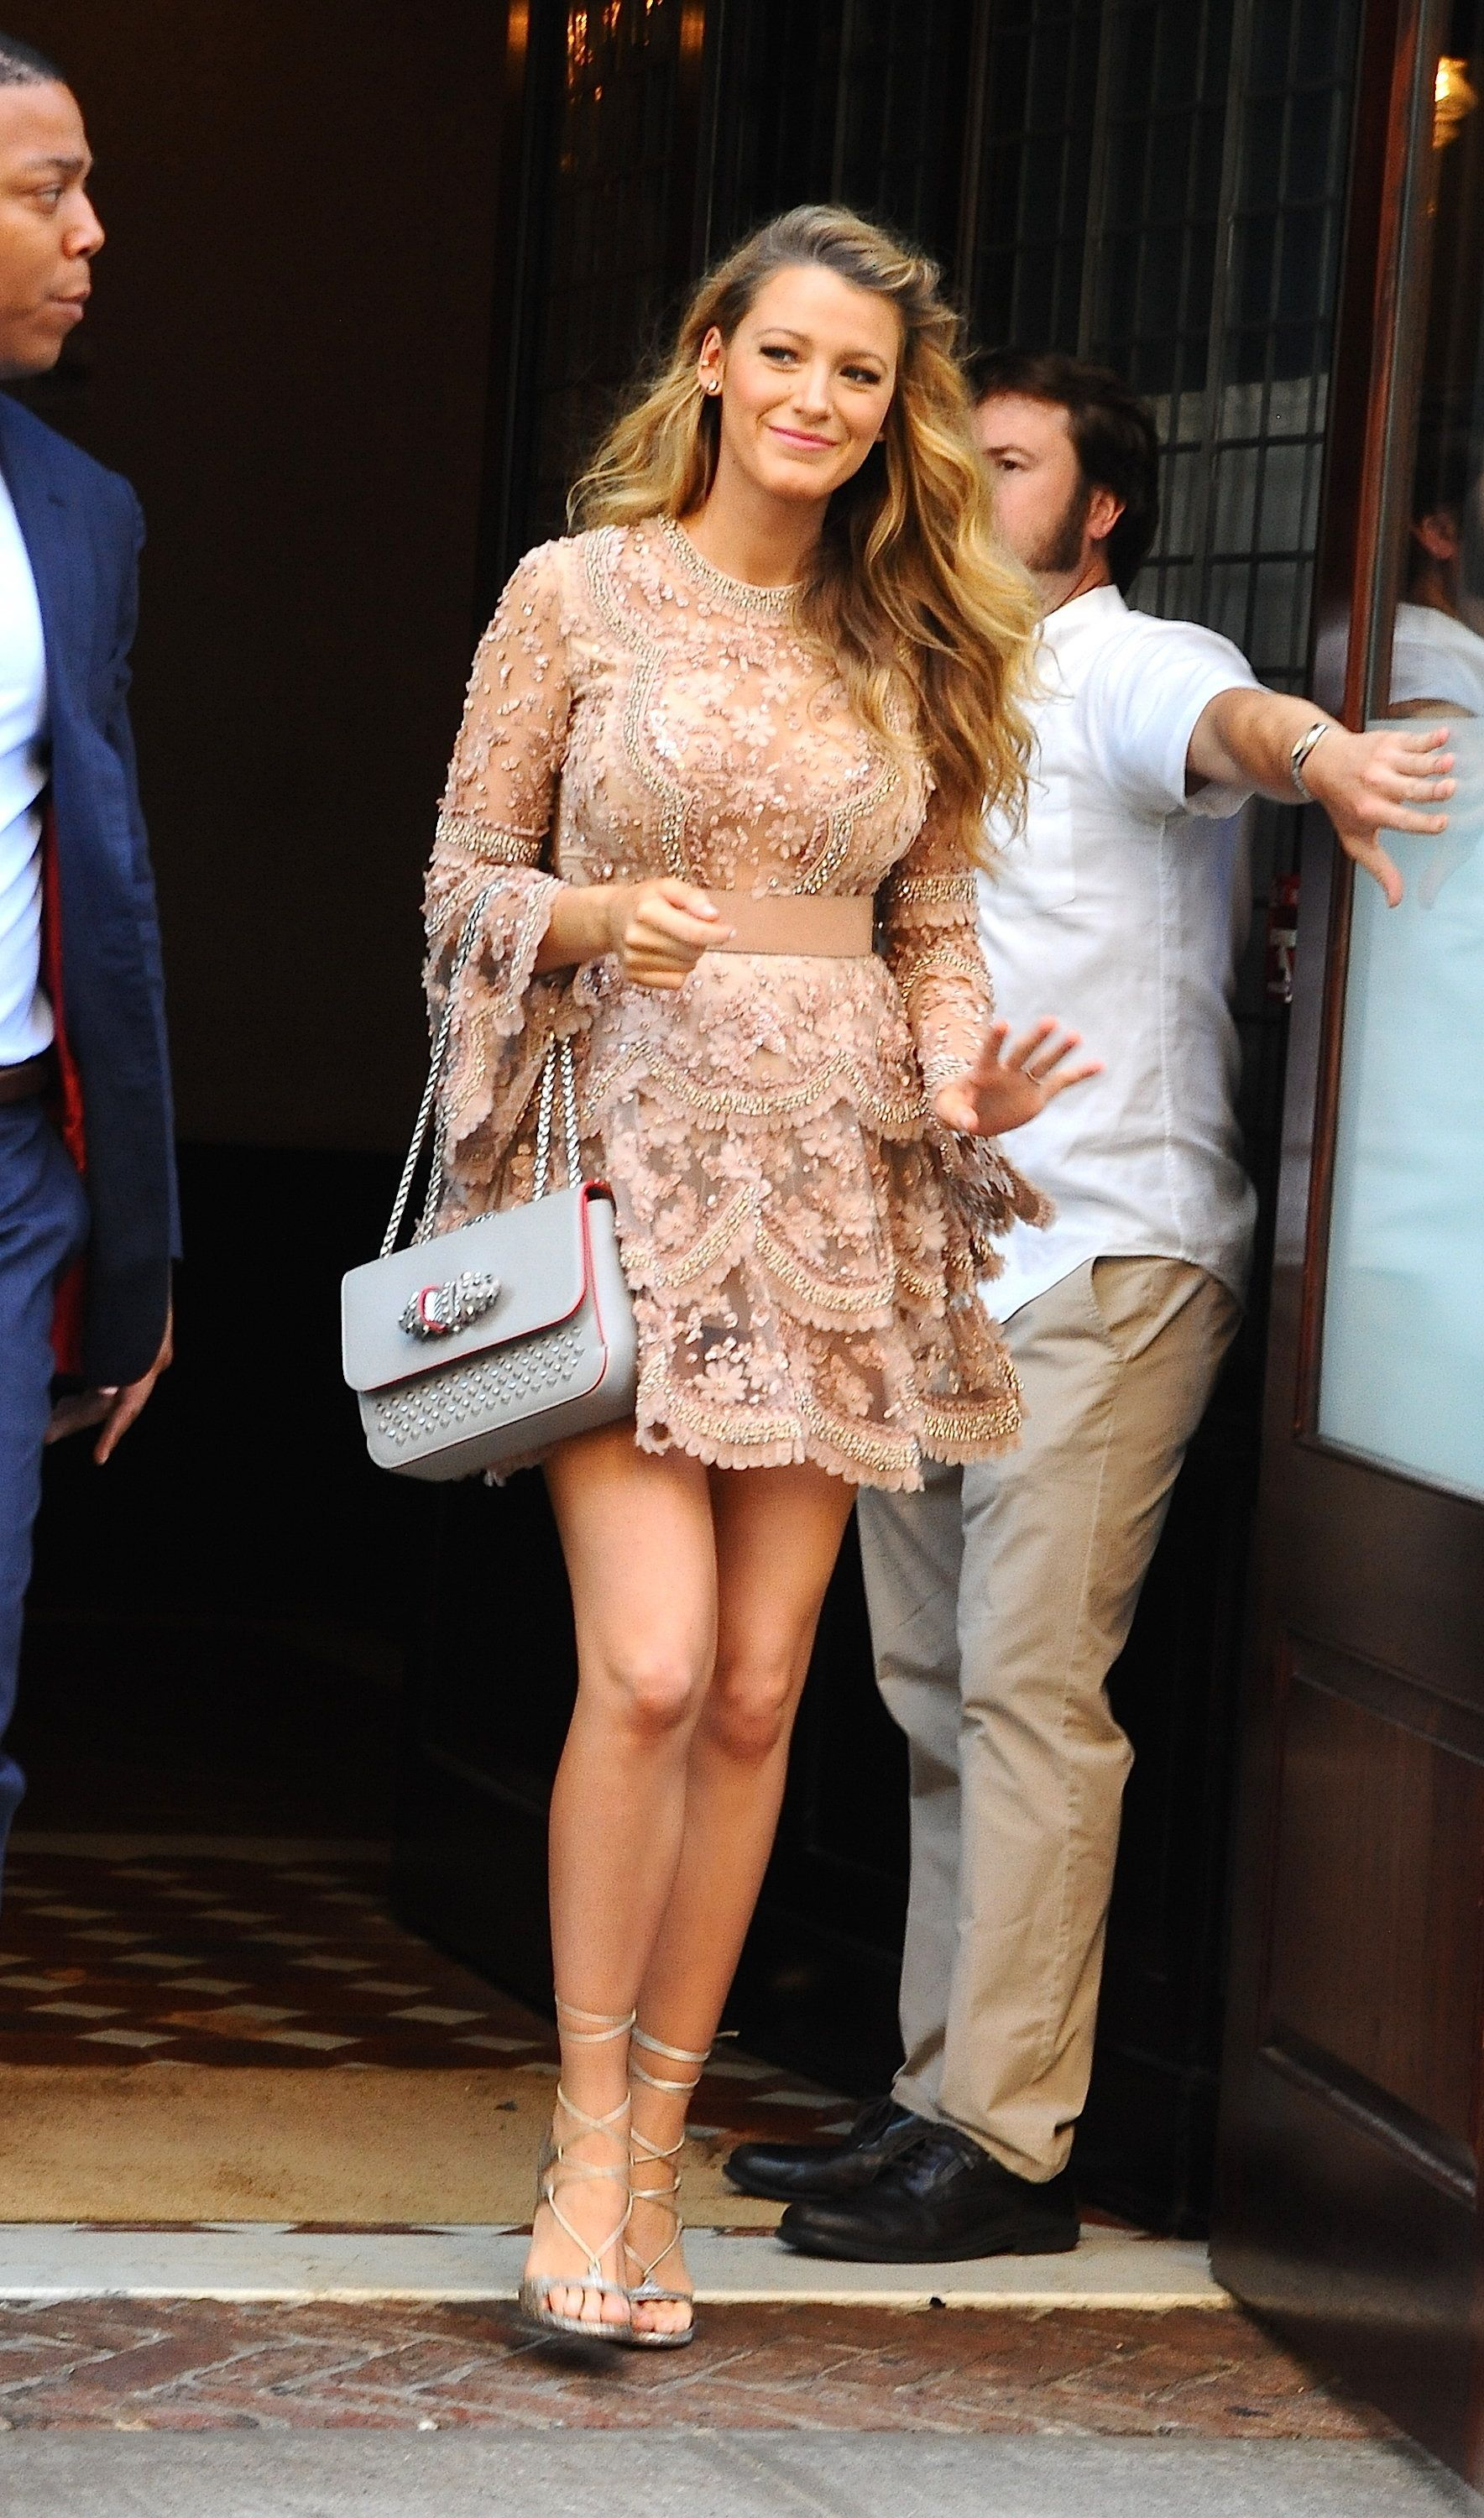 NEW YORK, NY - JUNE 20:  Actress Blake Lively is seen walking in Soho on June 20, 2016 in New York City.  (Photo by Raymond Hall/GC Images)